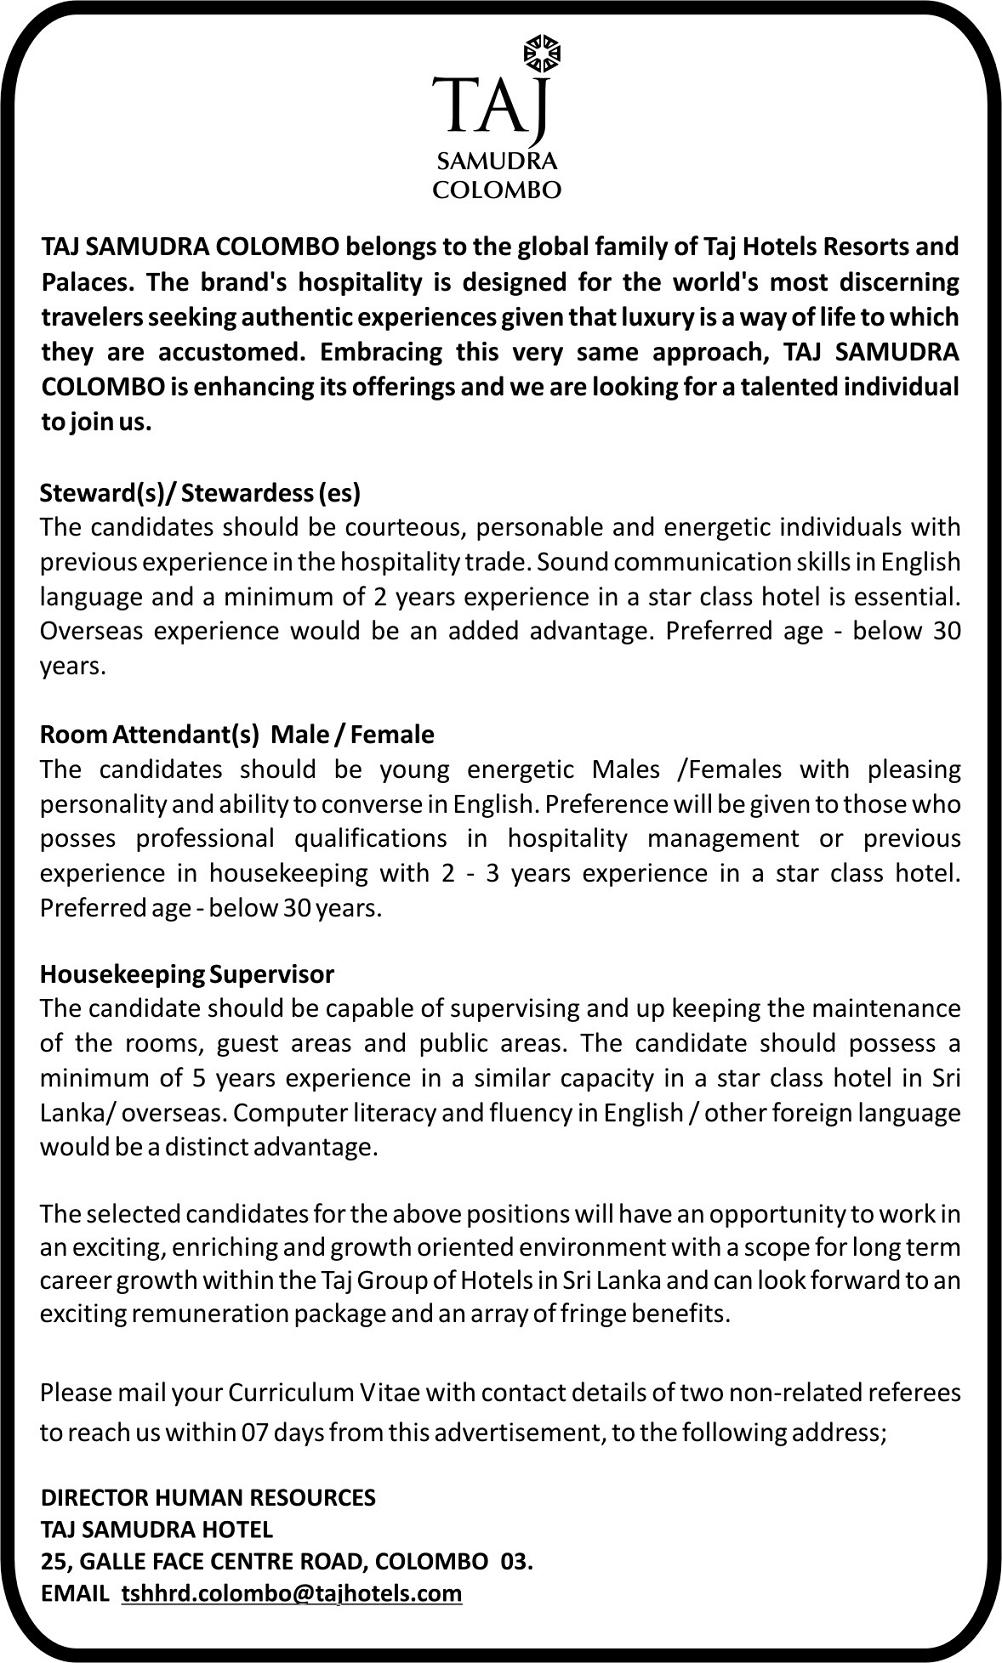 Stewards Room Attendants Housekeeping Supervisor Job Vacancy in